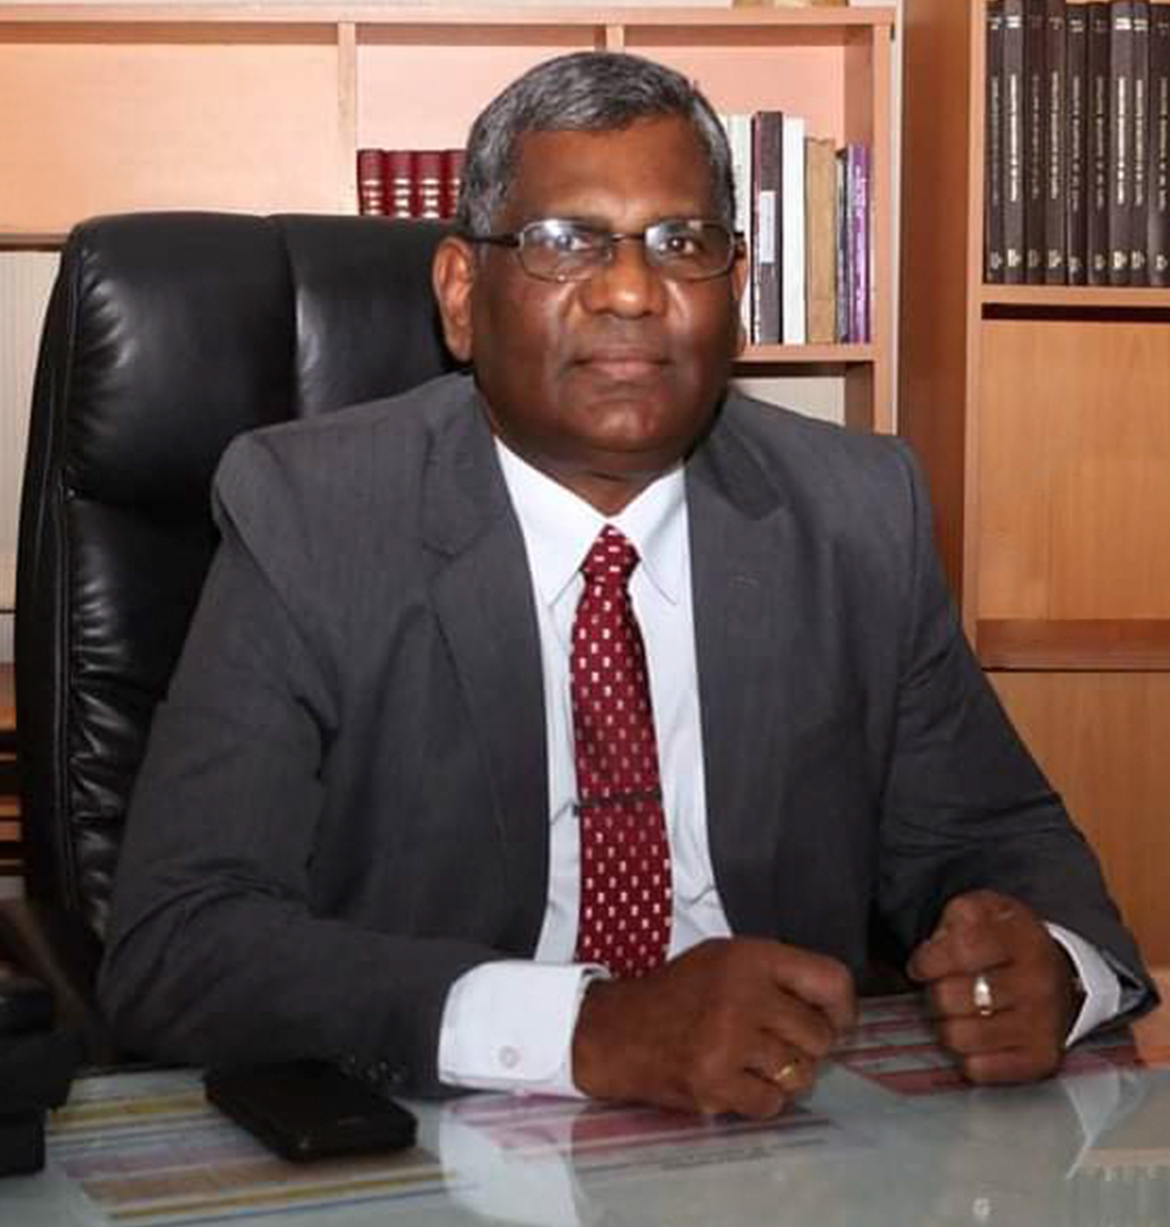 mr j j rathnasiri